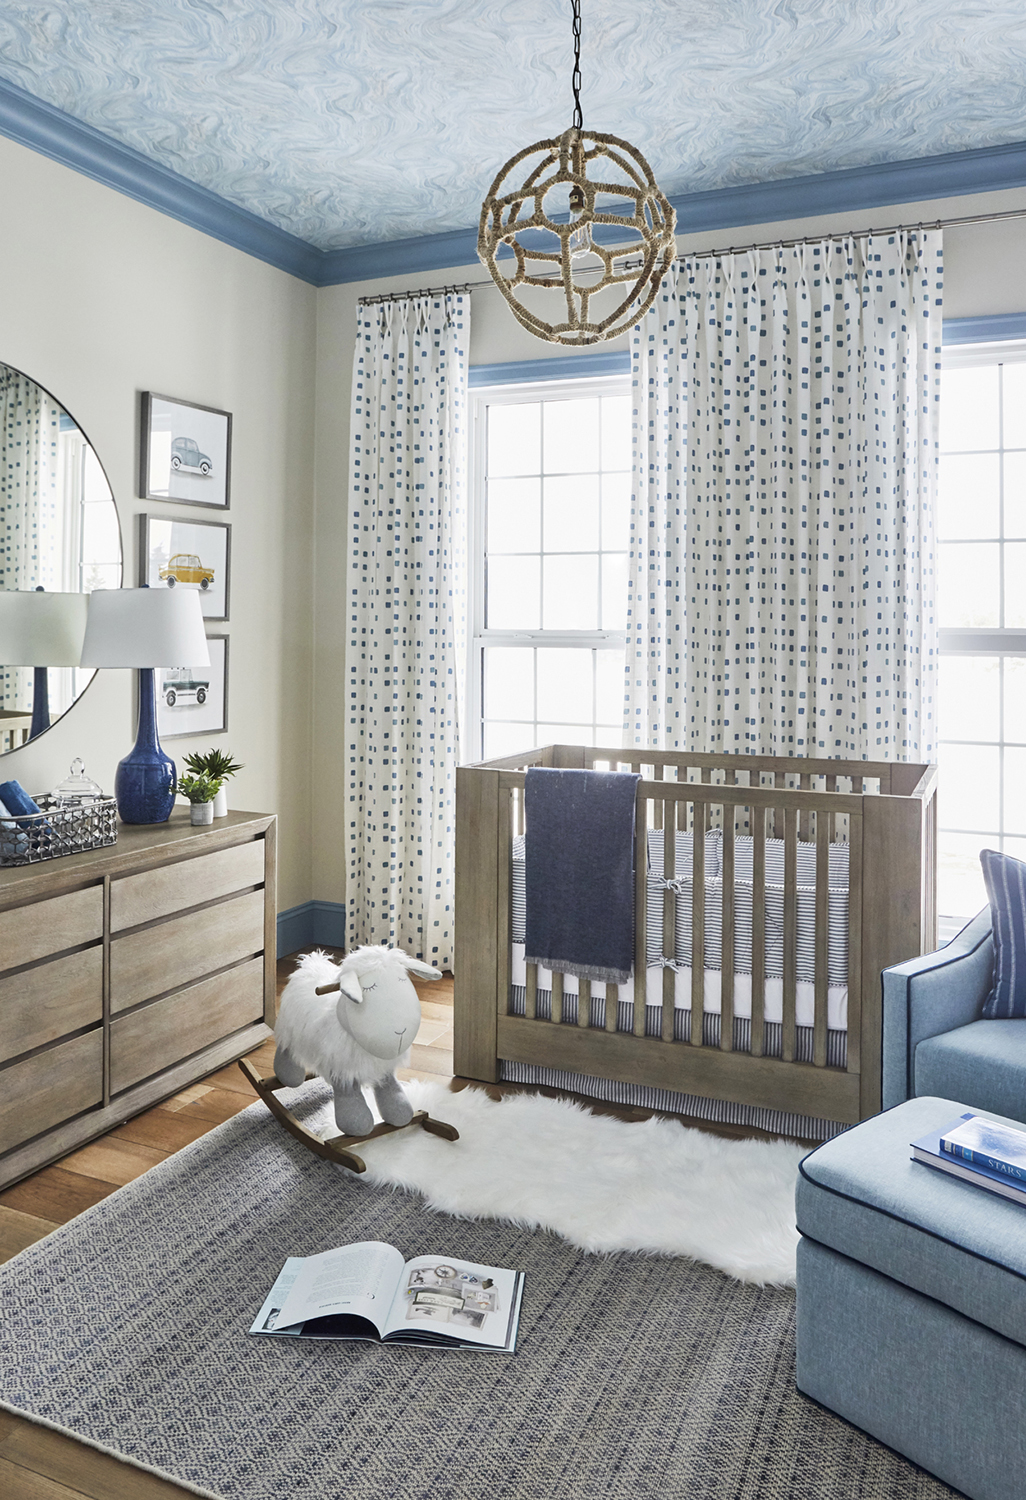 Baby Nursery Ideas | Atmosphere ID